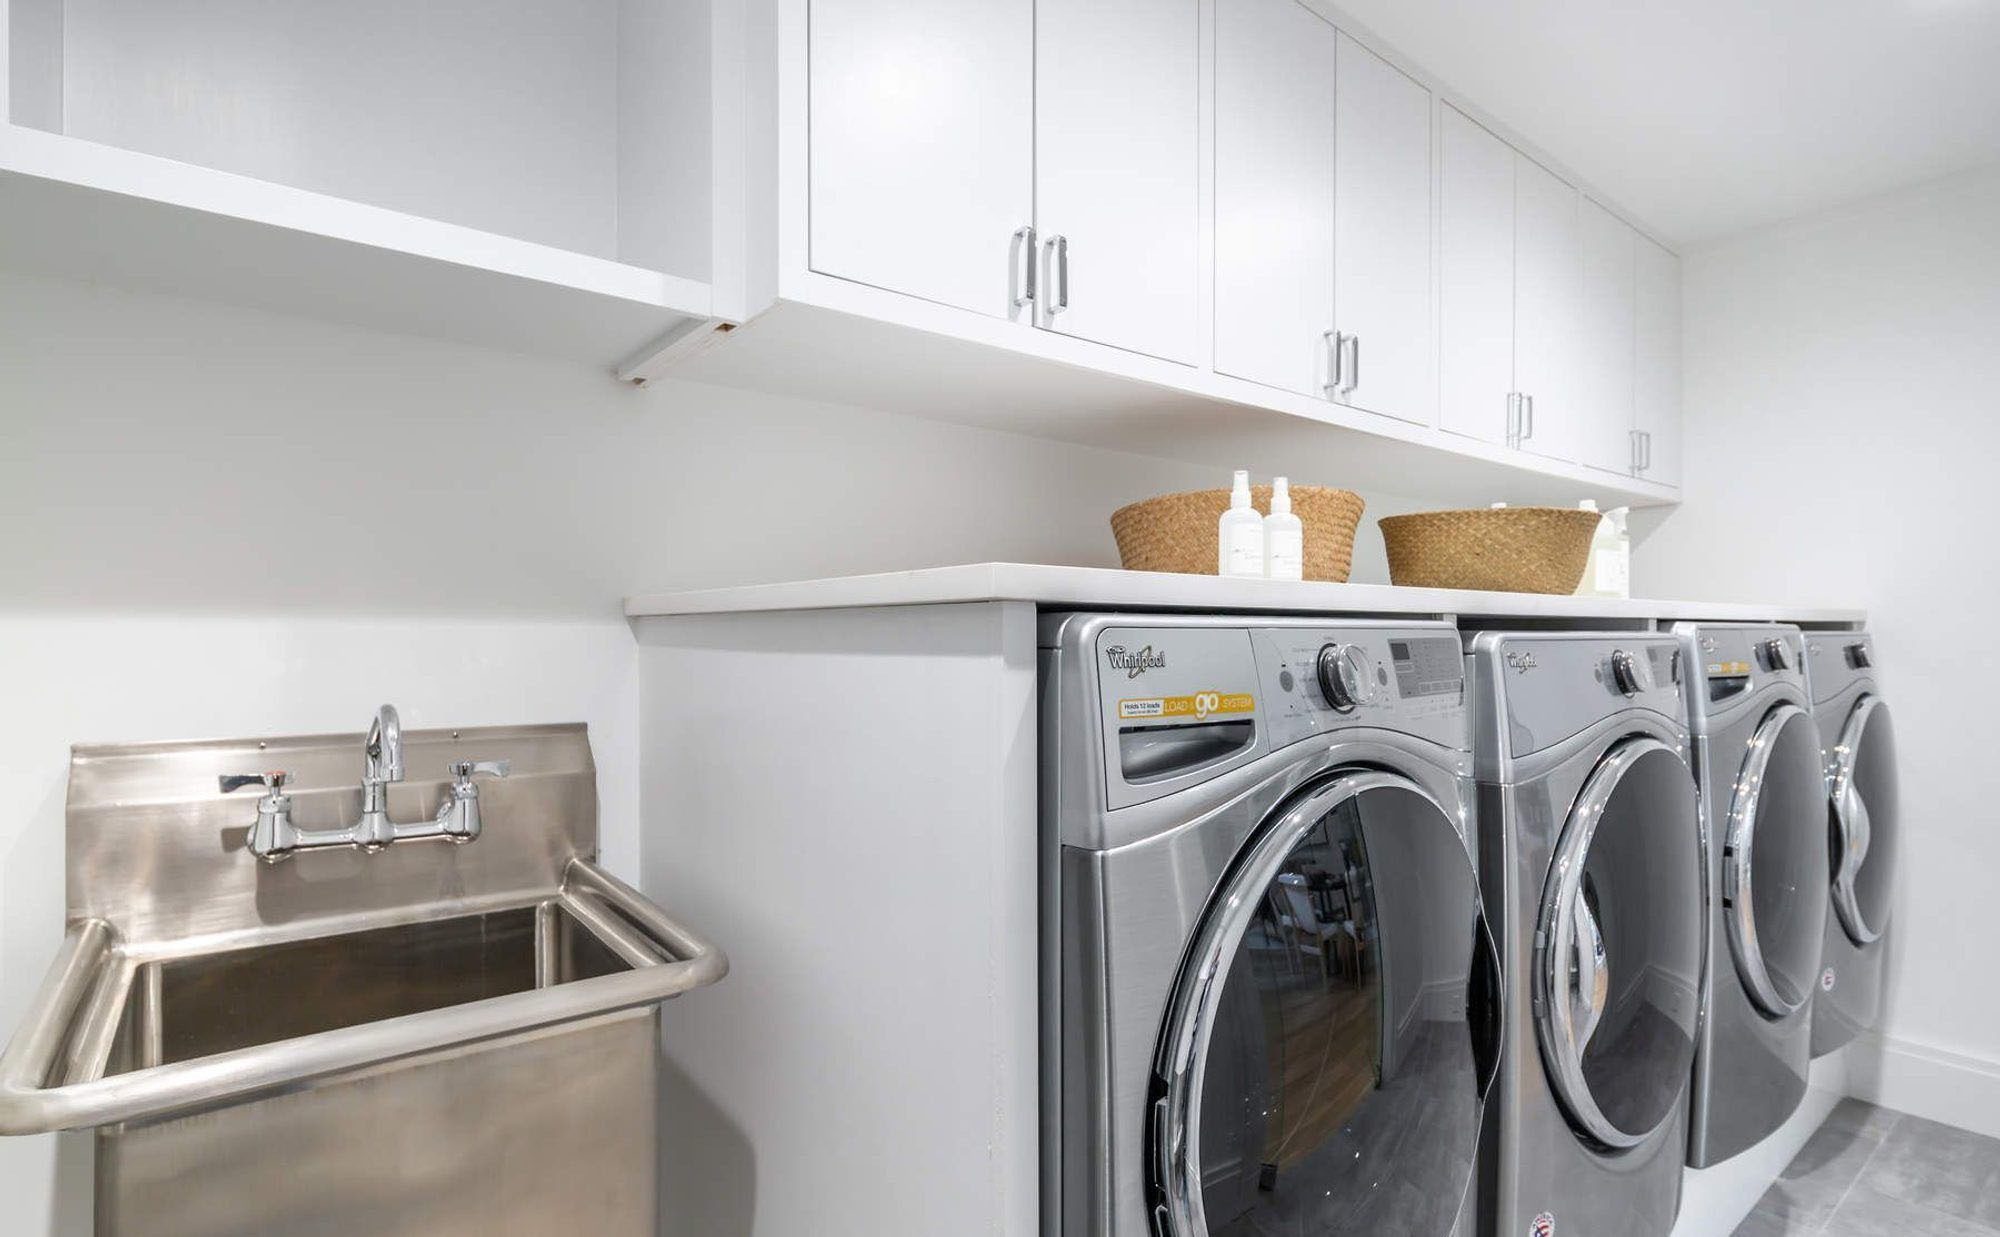 Large laundry room with two washers/dryers and a stainless steel slop sink.